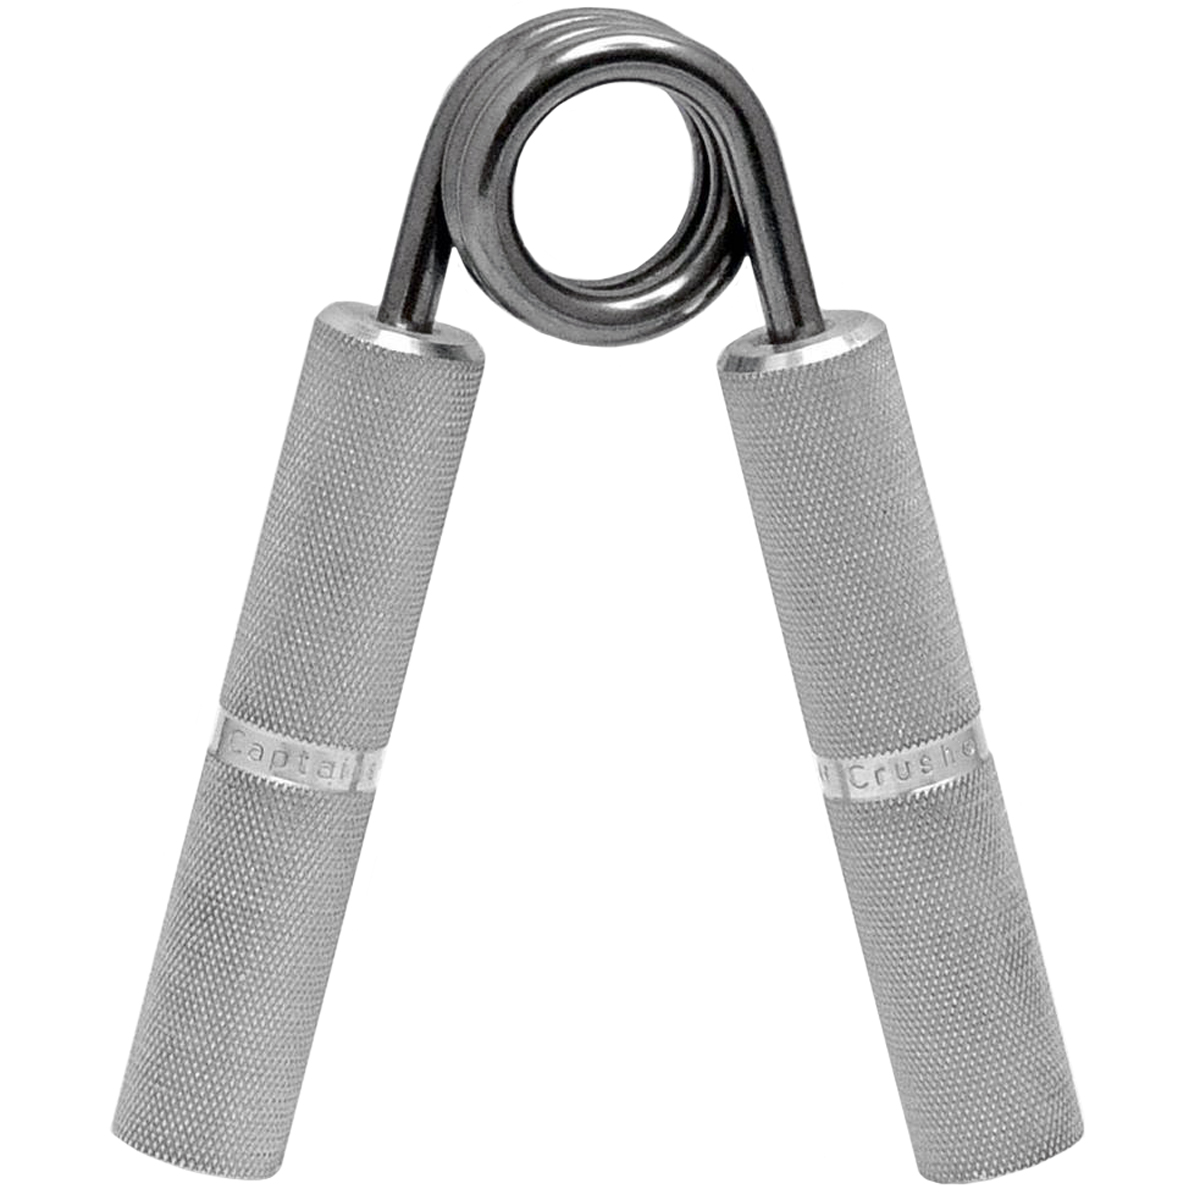 Captains of Crush Hand Gripper Trainer